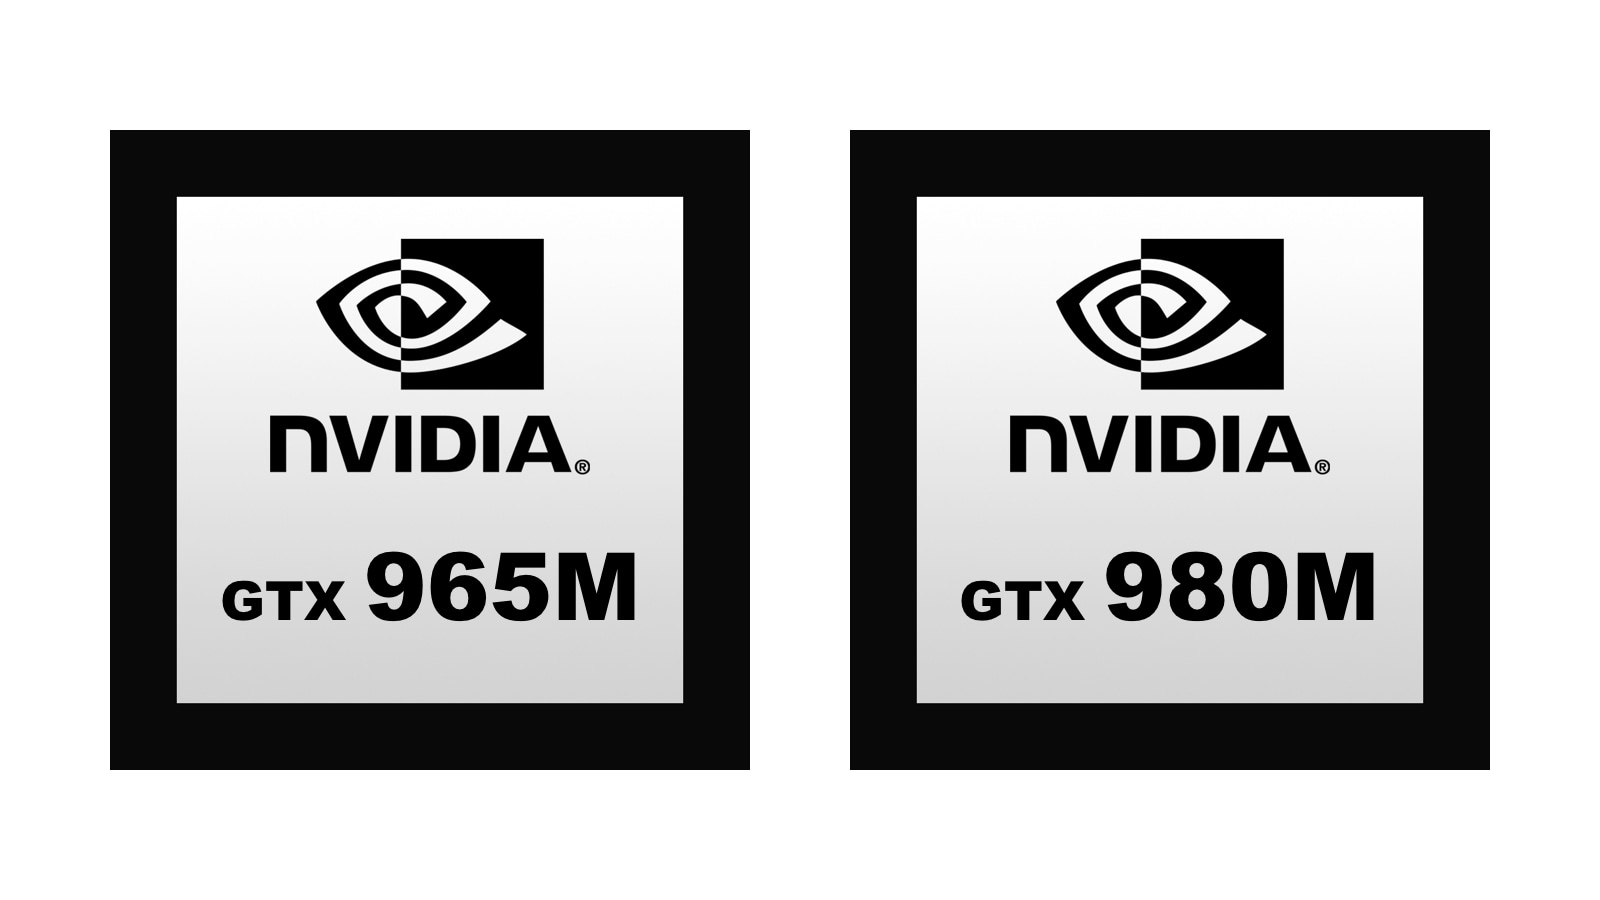 NVIDIA GeForce GTX 965M or 980M